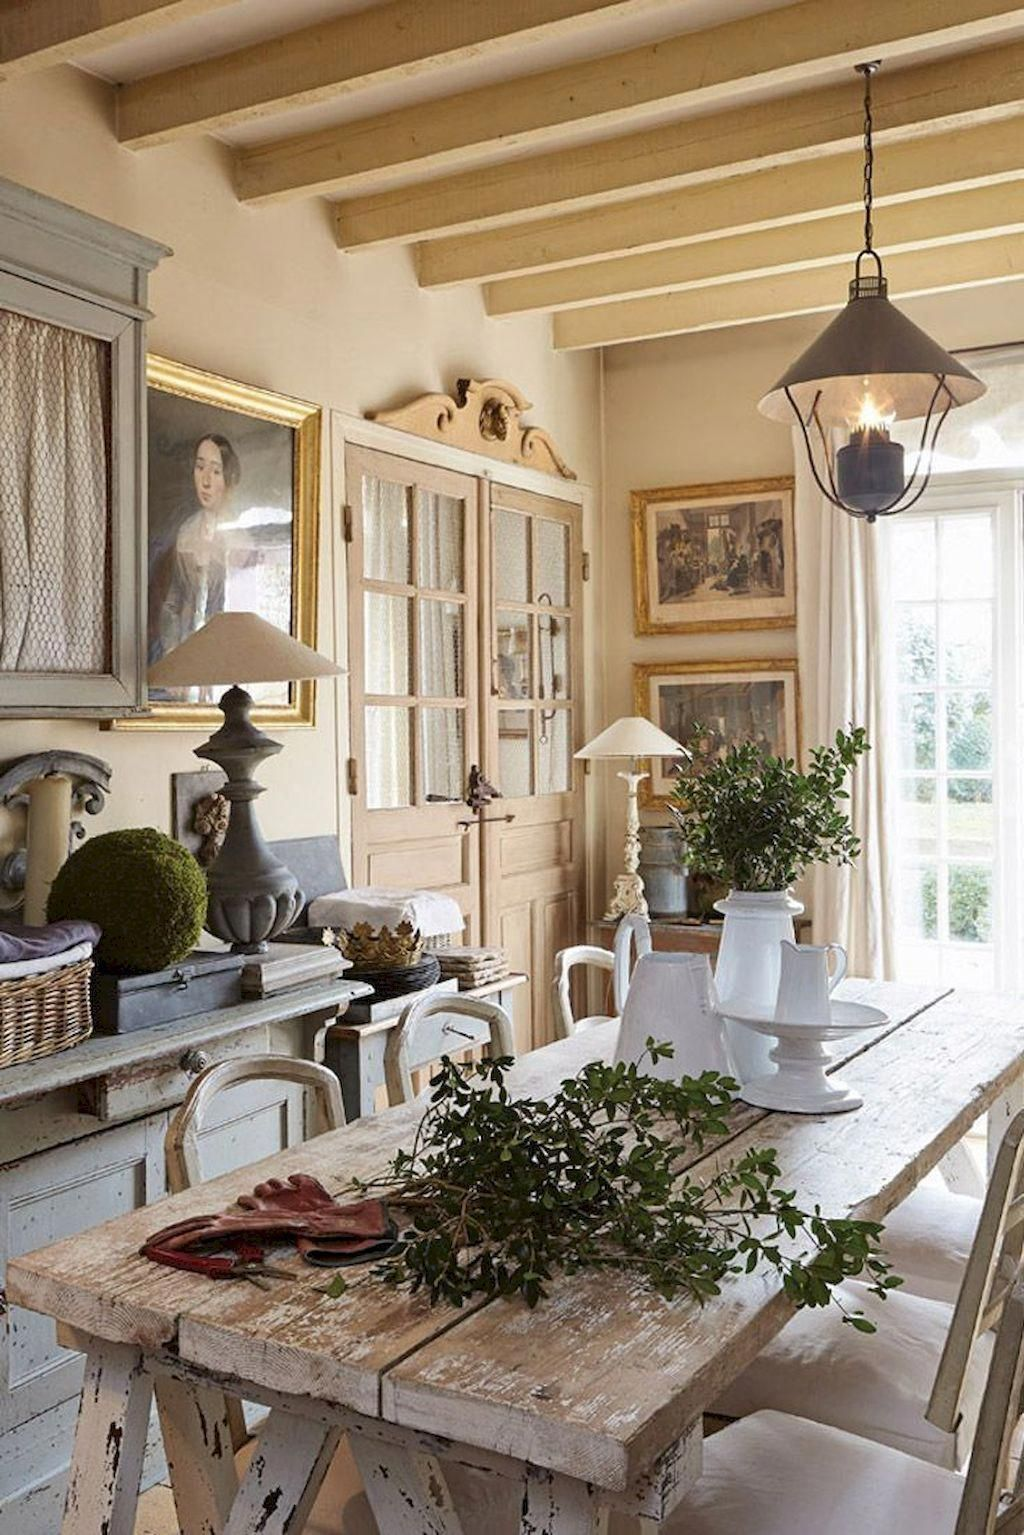 57 fancy french country living room decor ideas homespecially rh pinterest com